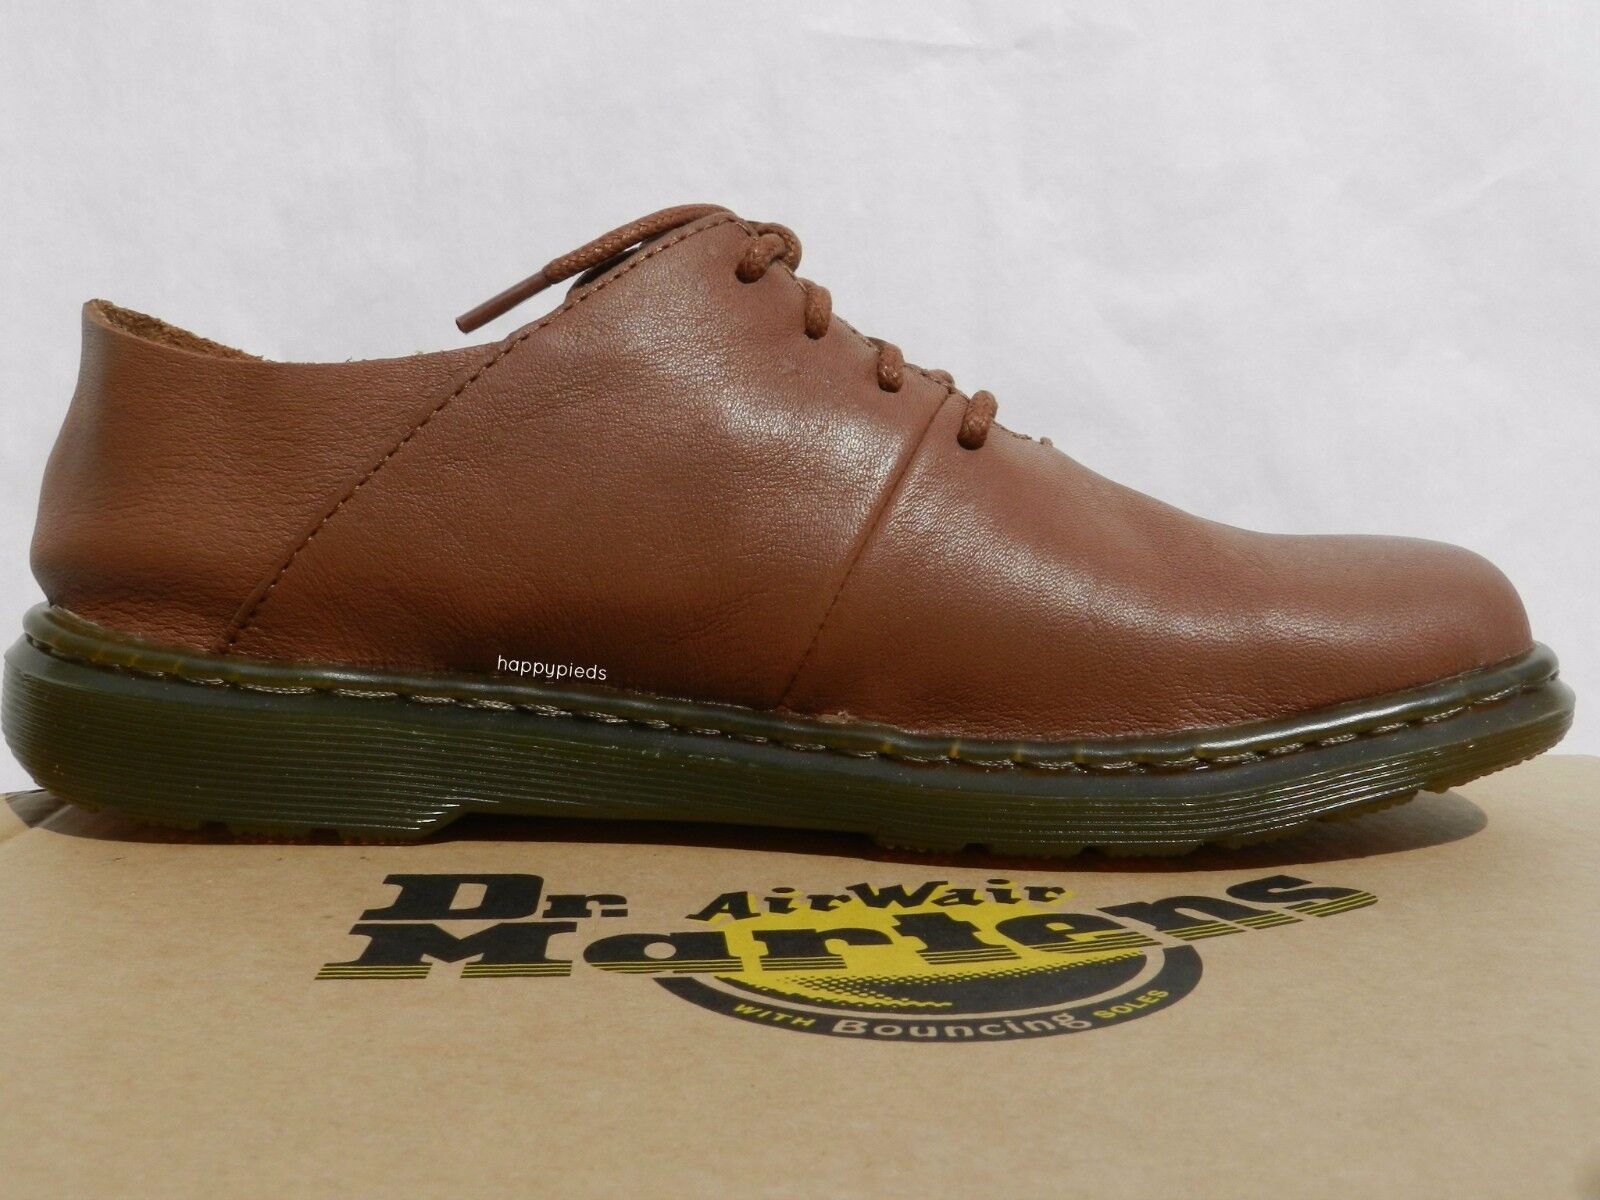 Dr Martens Lorrie II shoes Femme 36 Ballerines Mary Jane Derby Tan UK3 Neuf